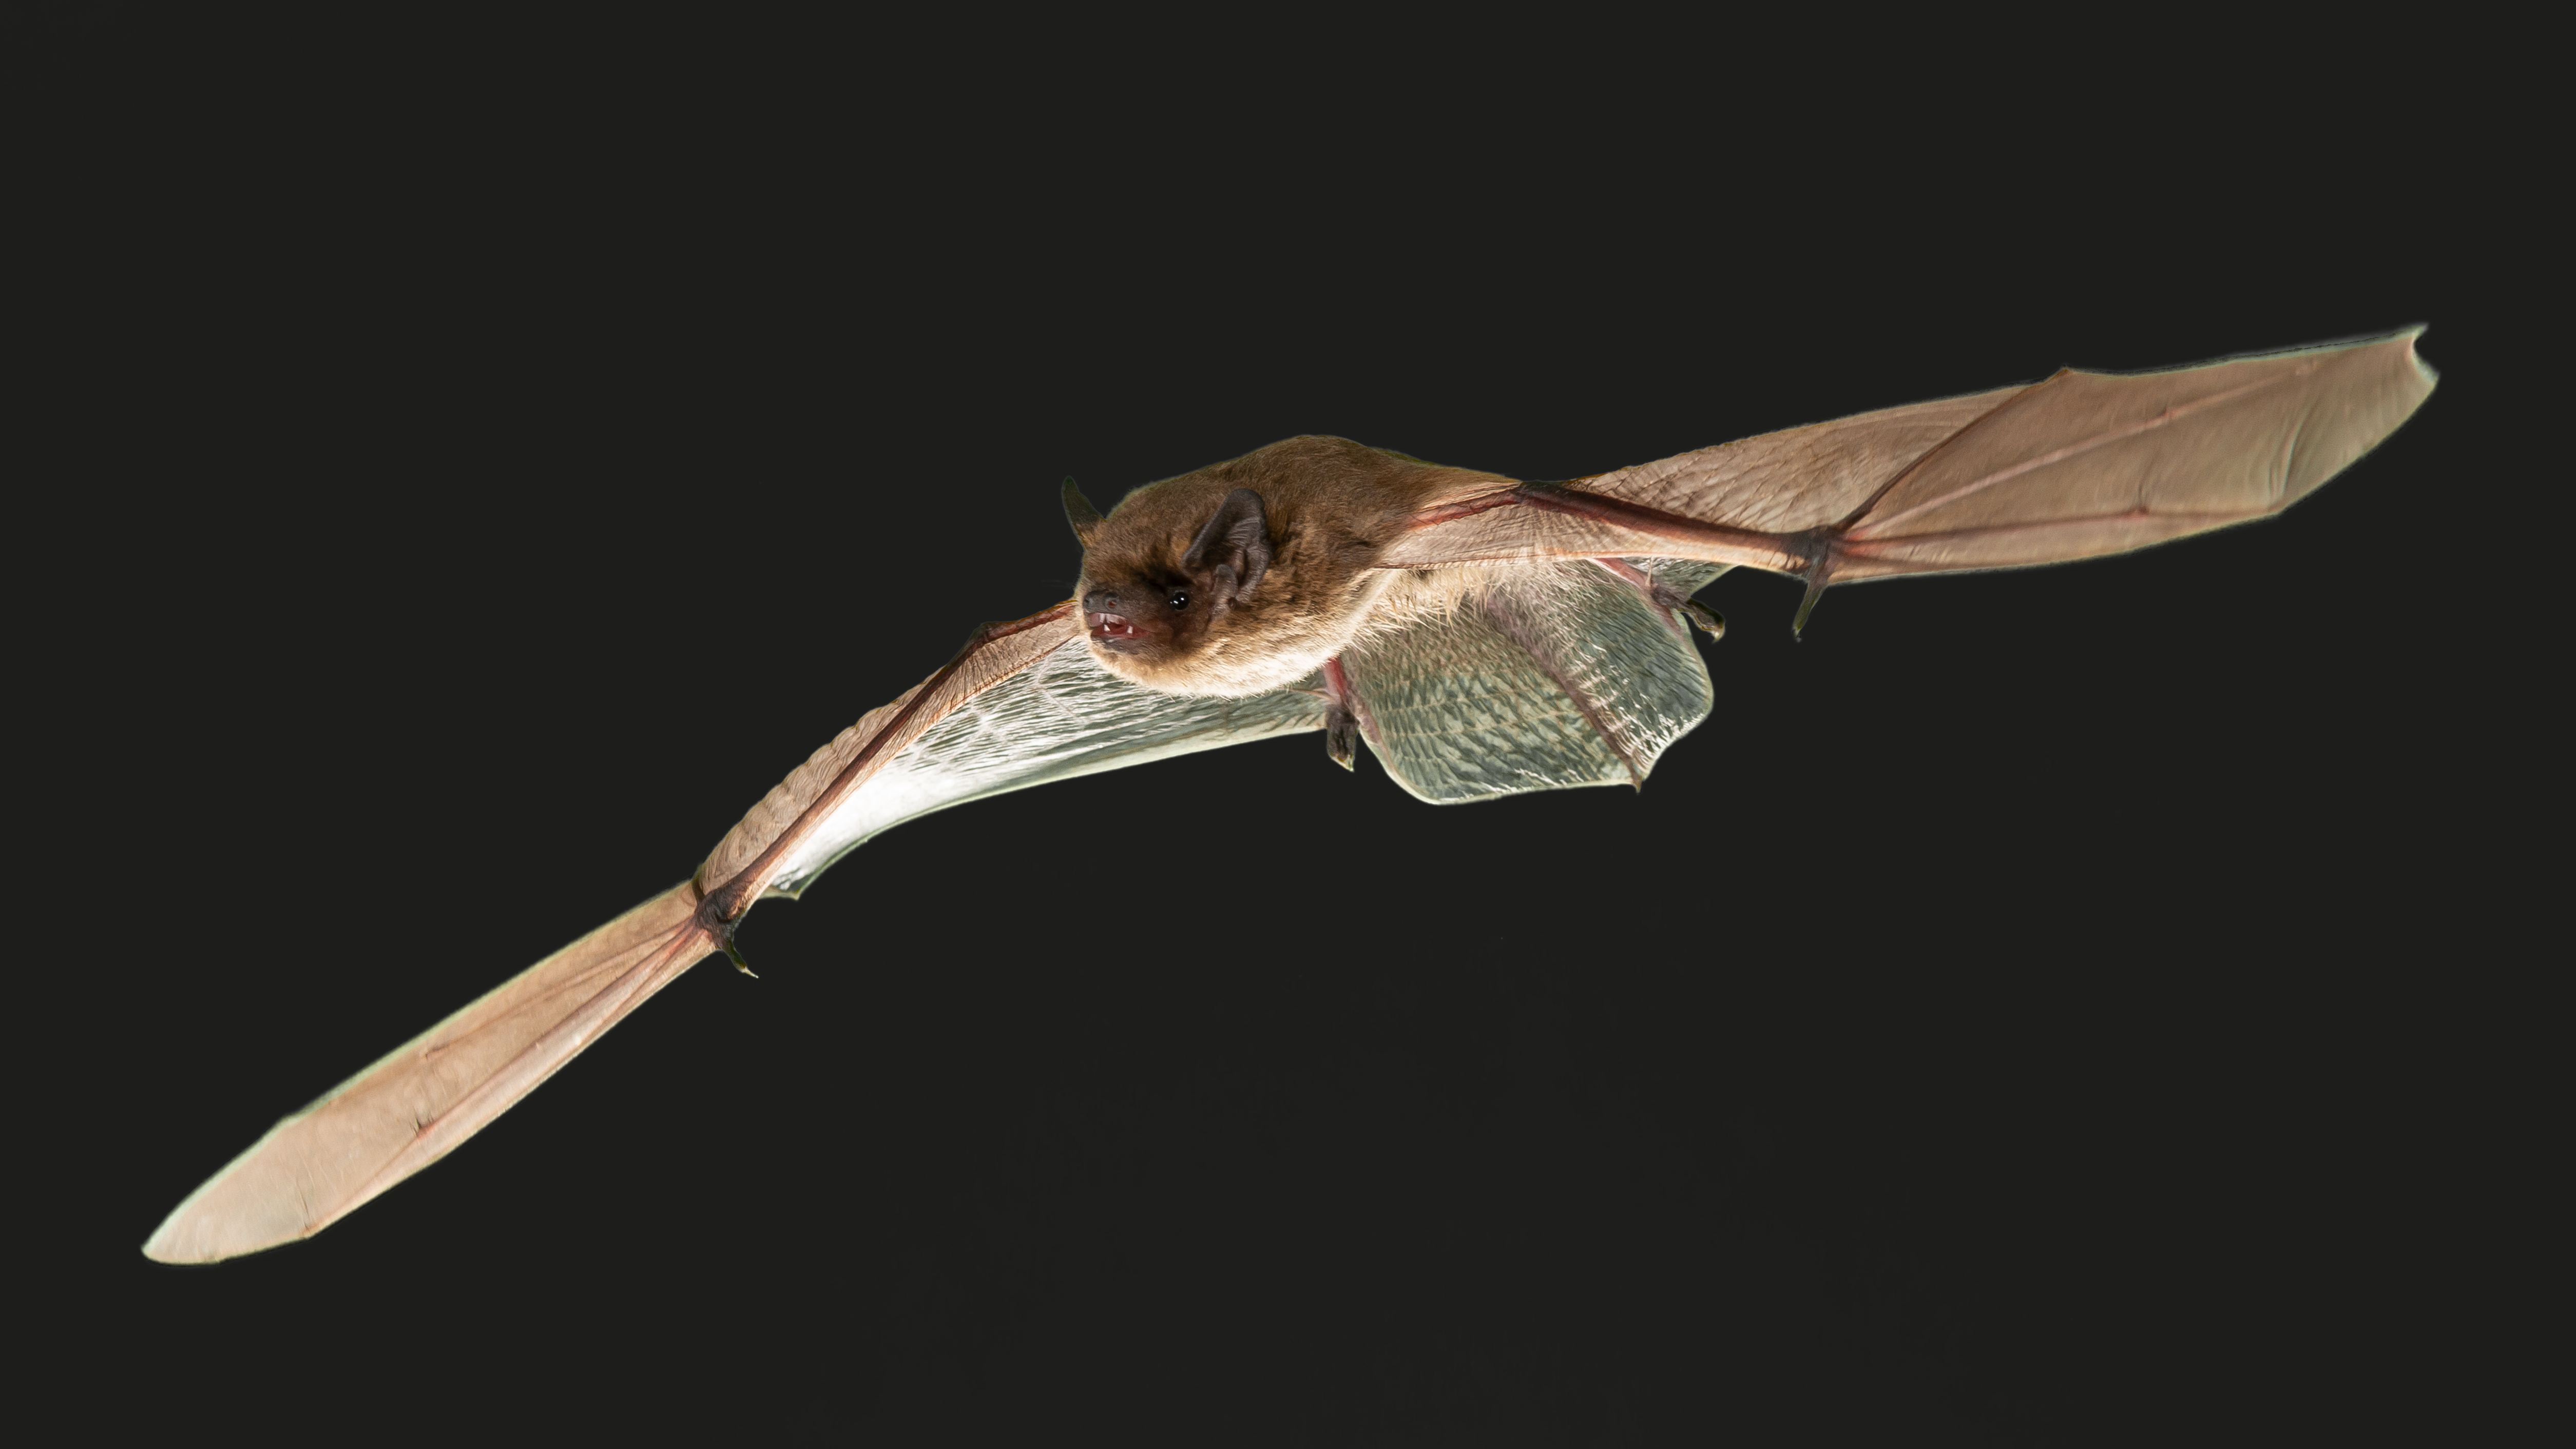 Researchers recently conducted a study examining the effects of artificial LED light on two species of migrating European bats.